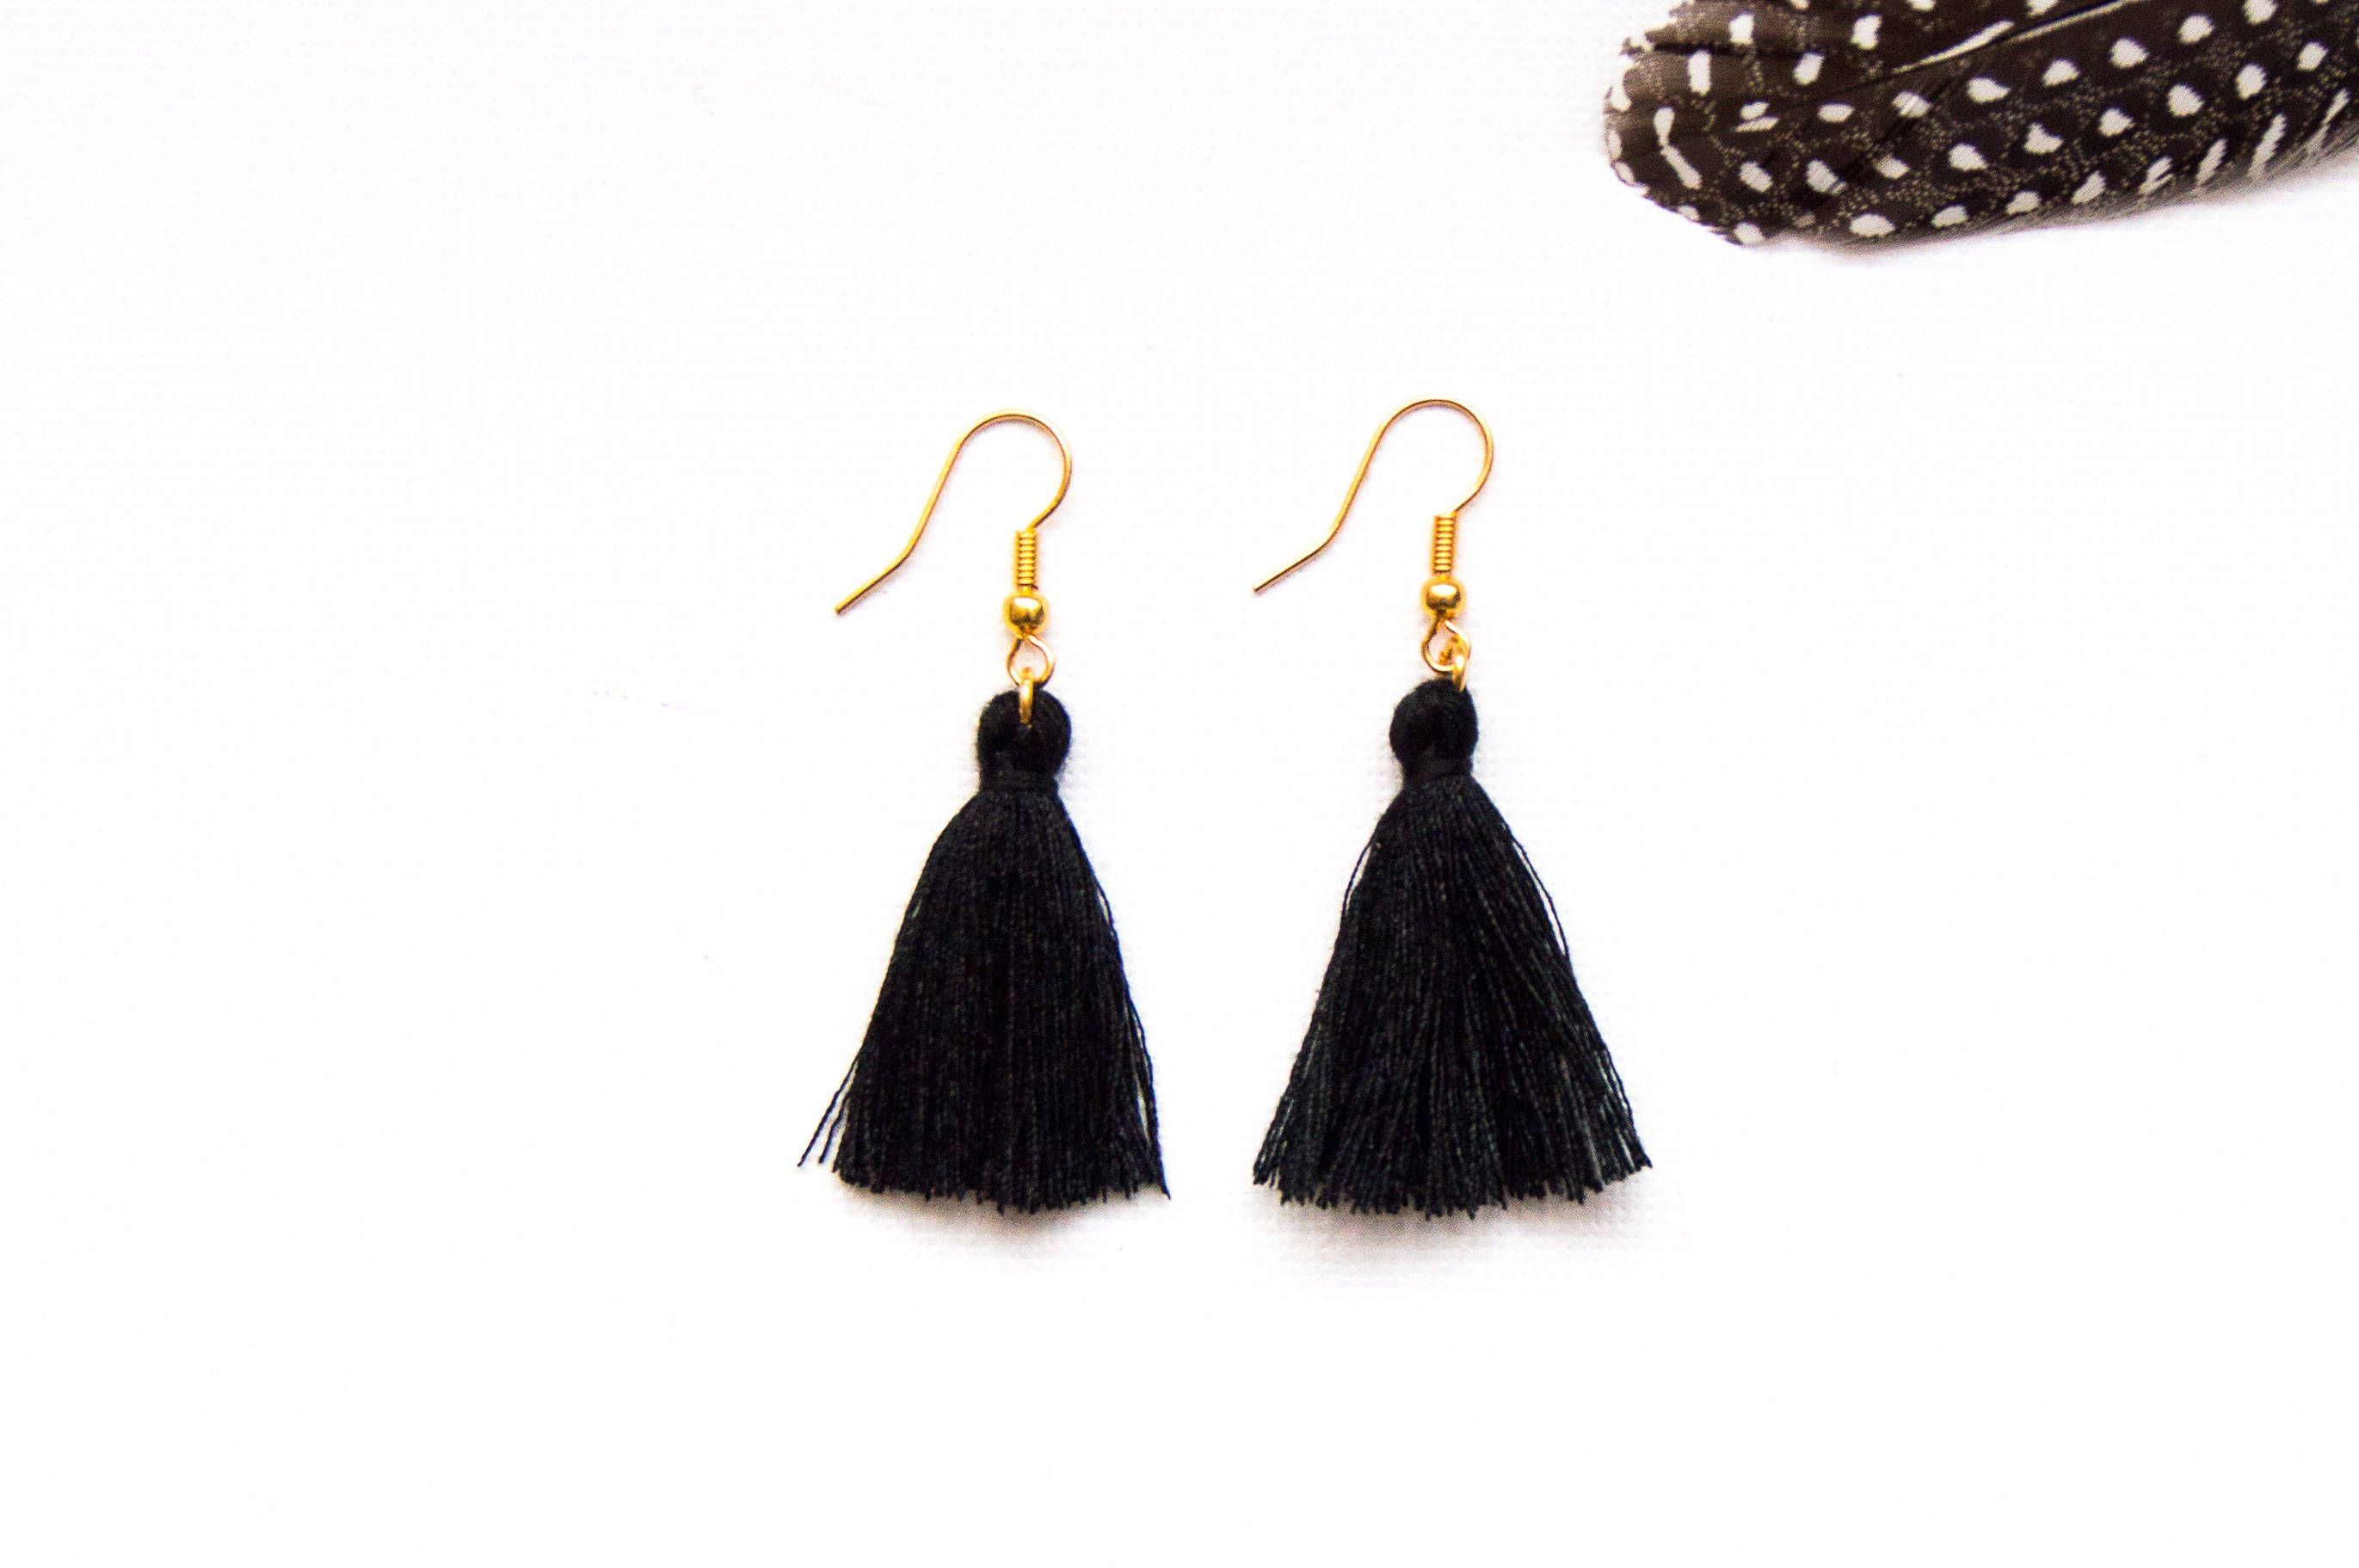 gallery product lyst earrings fringe in silver by crystal metallic lane cz kenneth jewelry jay